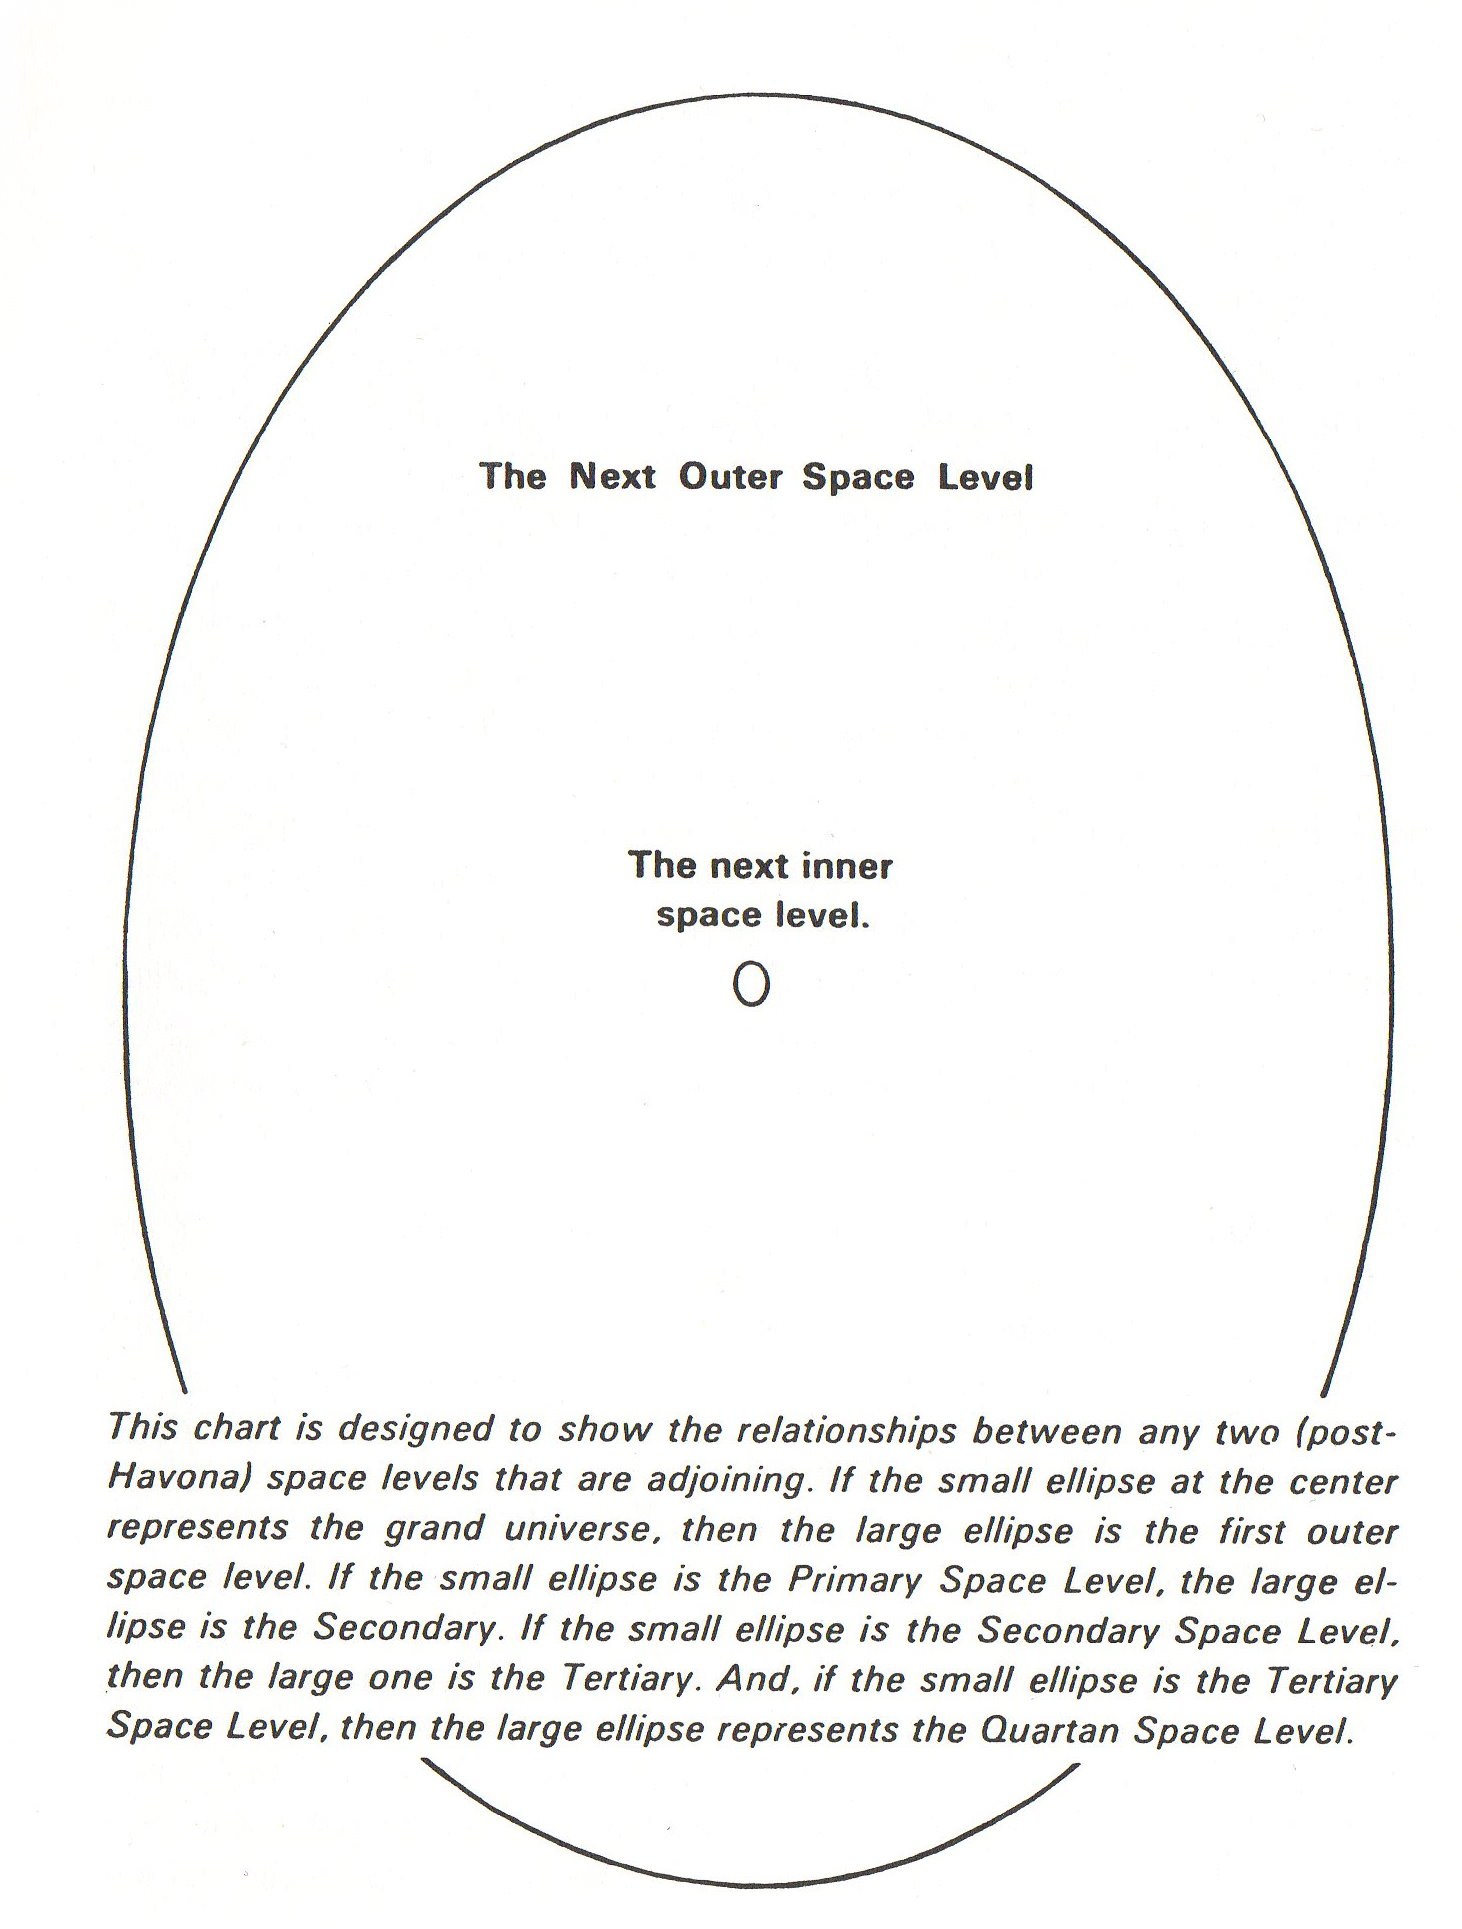 Relationships of adjacent space levels